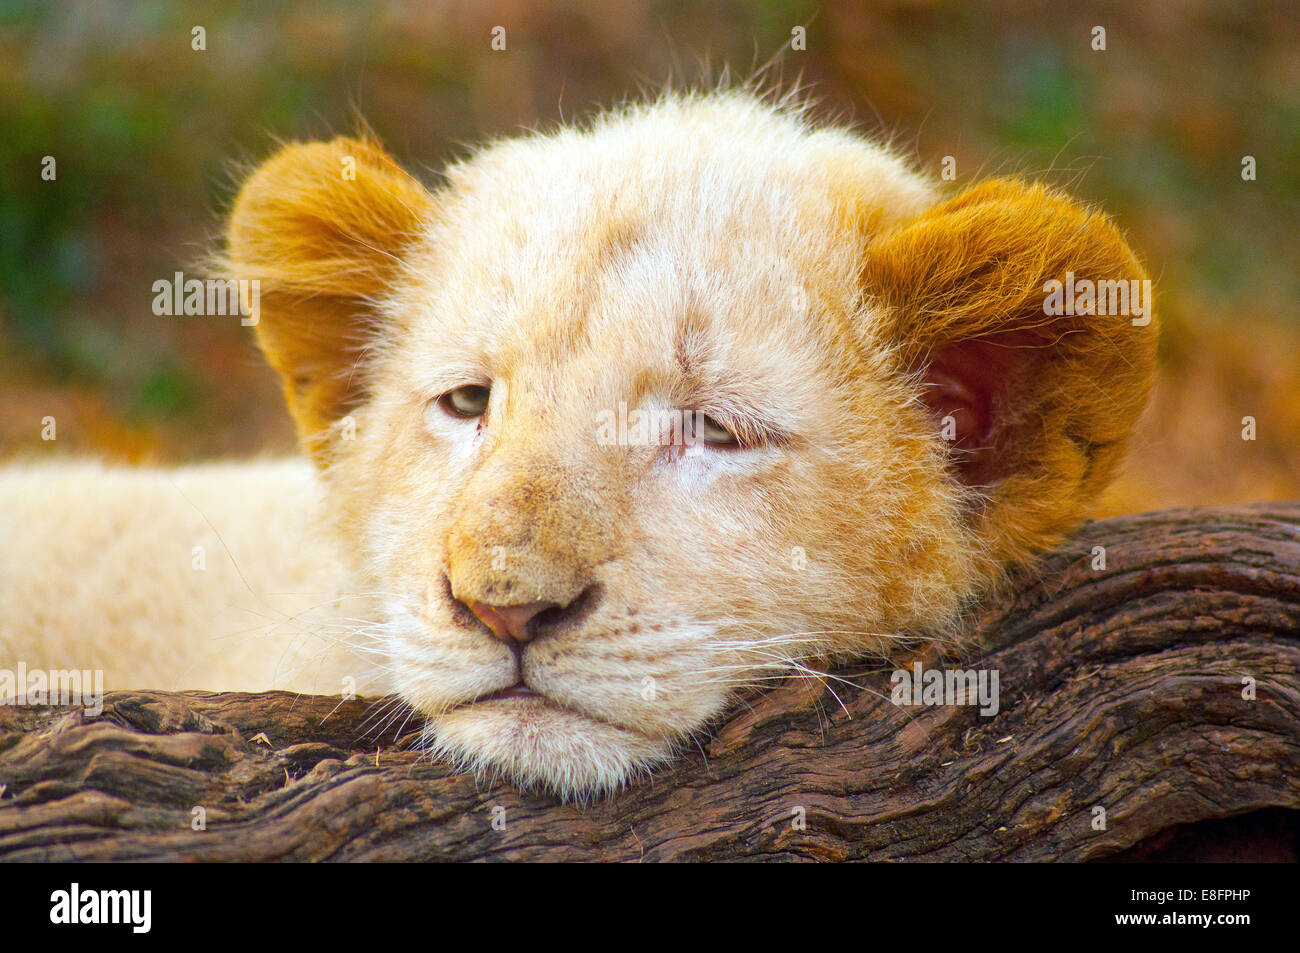 Picture of White Lion Cub (Panthera leo krugeri) lying on tree trunk, Limpopo, South Africa - Stock Image